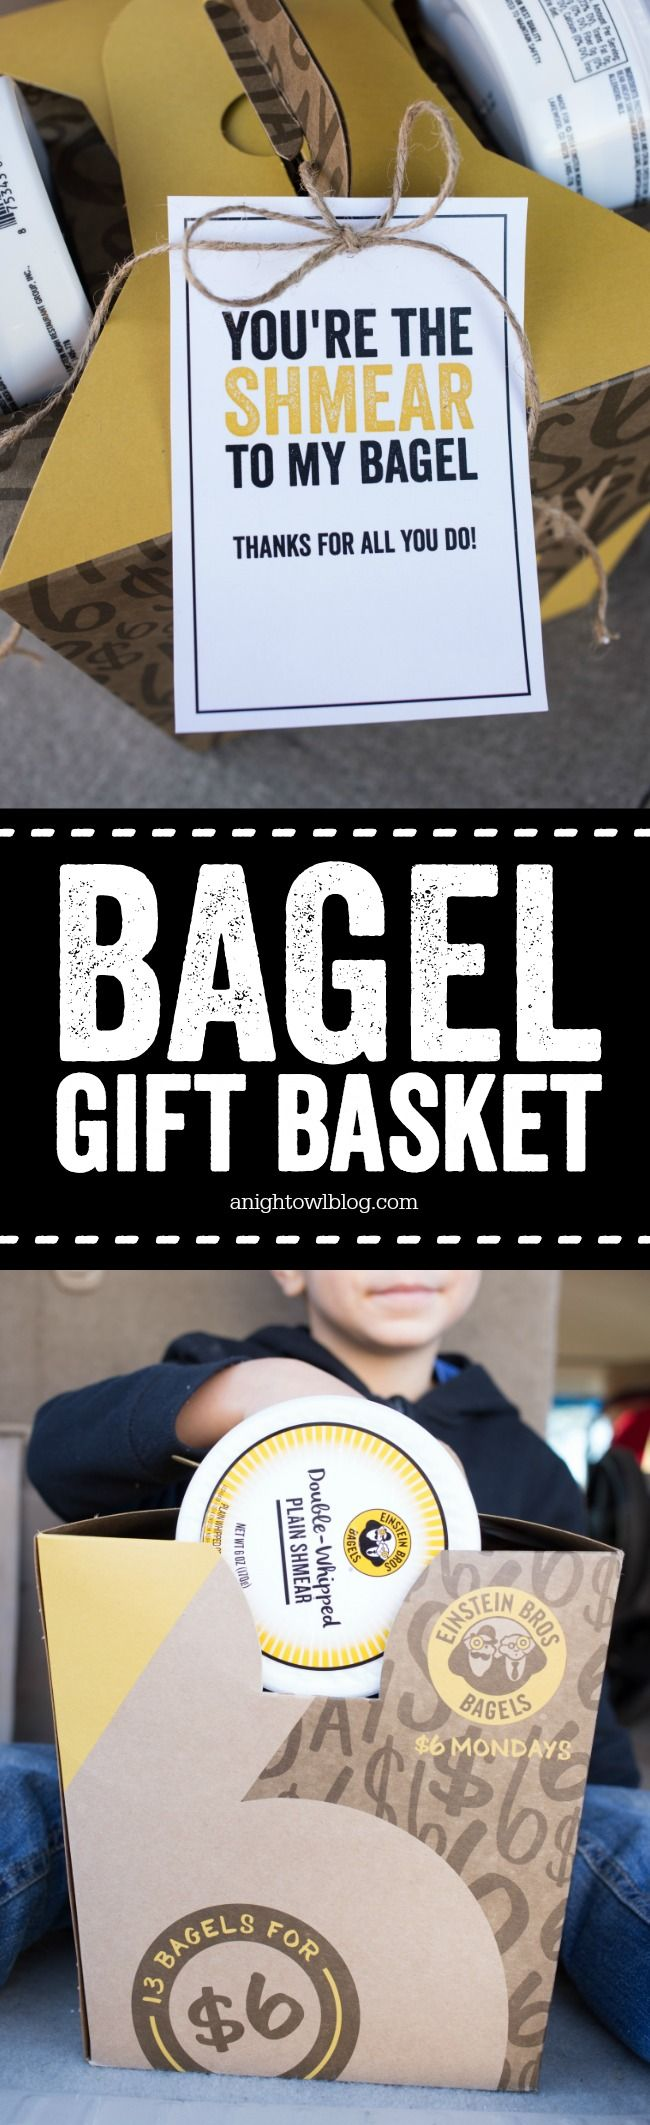 Breakfast Bagel Gift Basket - such a great gift idea for teachers, neighbors and more! With FREE cute printable tags. AD #UnMondayMonday